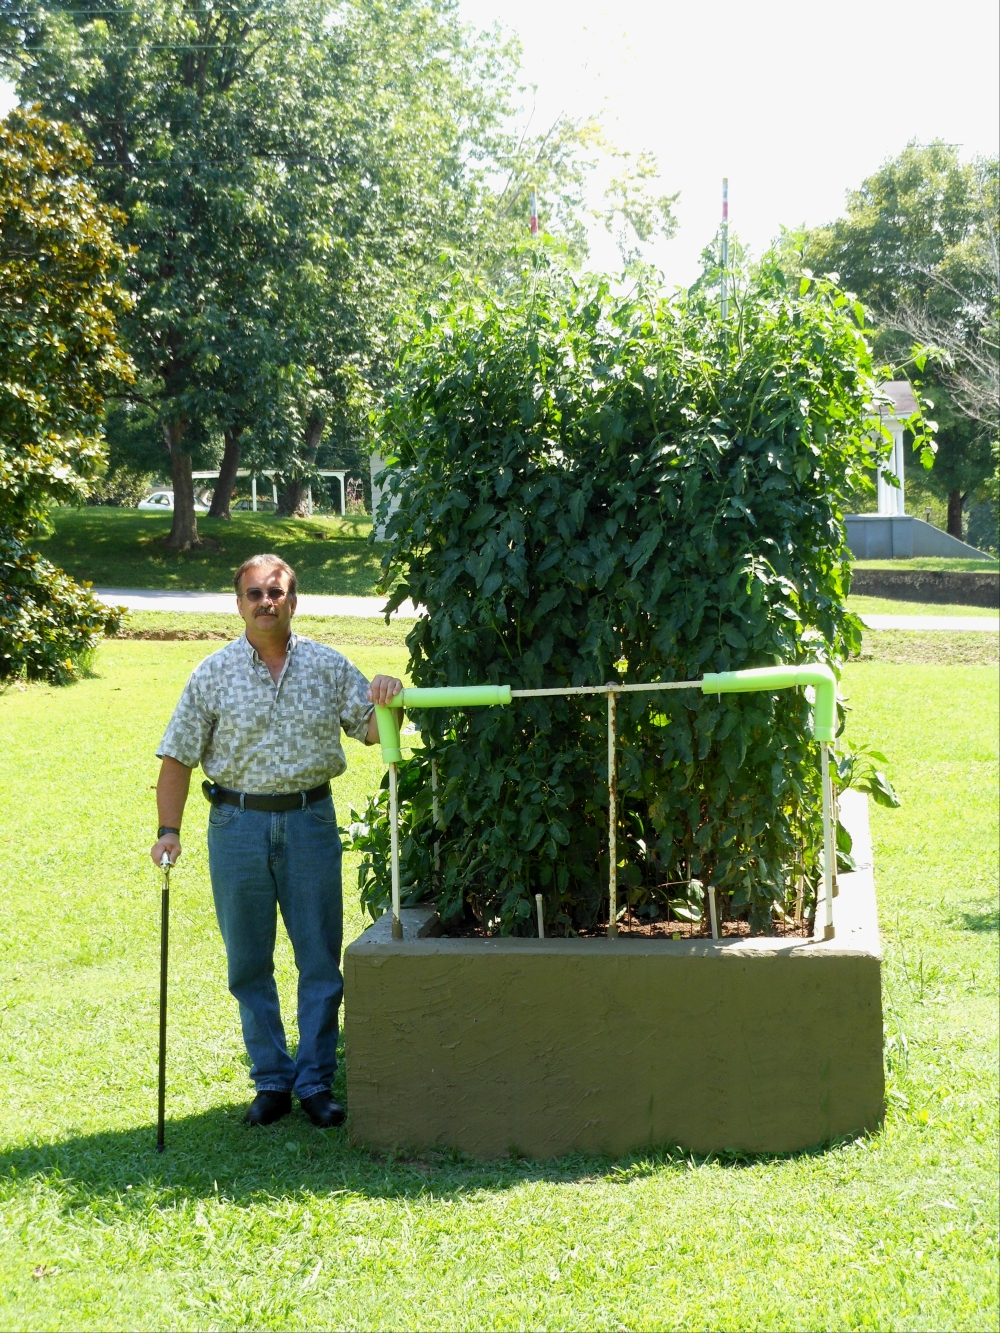 07-11-14_Me_And_BetterBoy_Tomato_Plants03